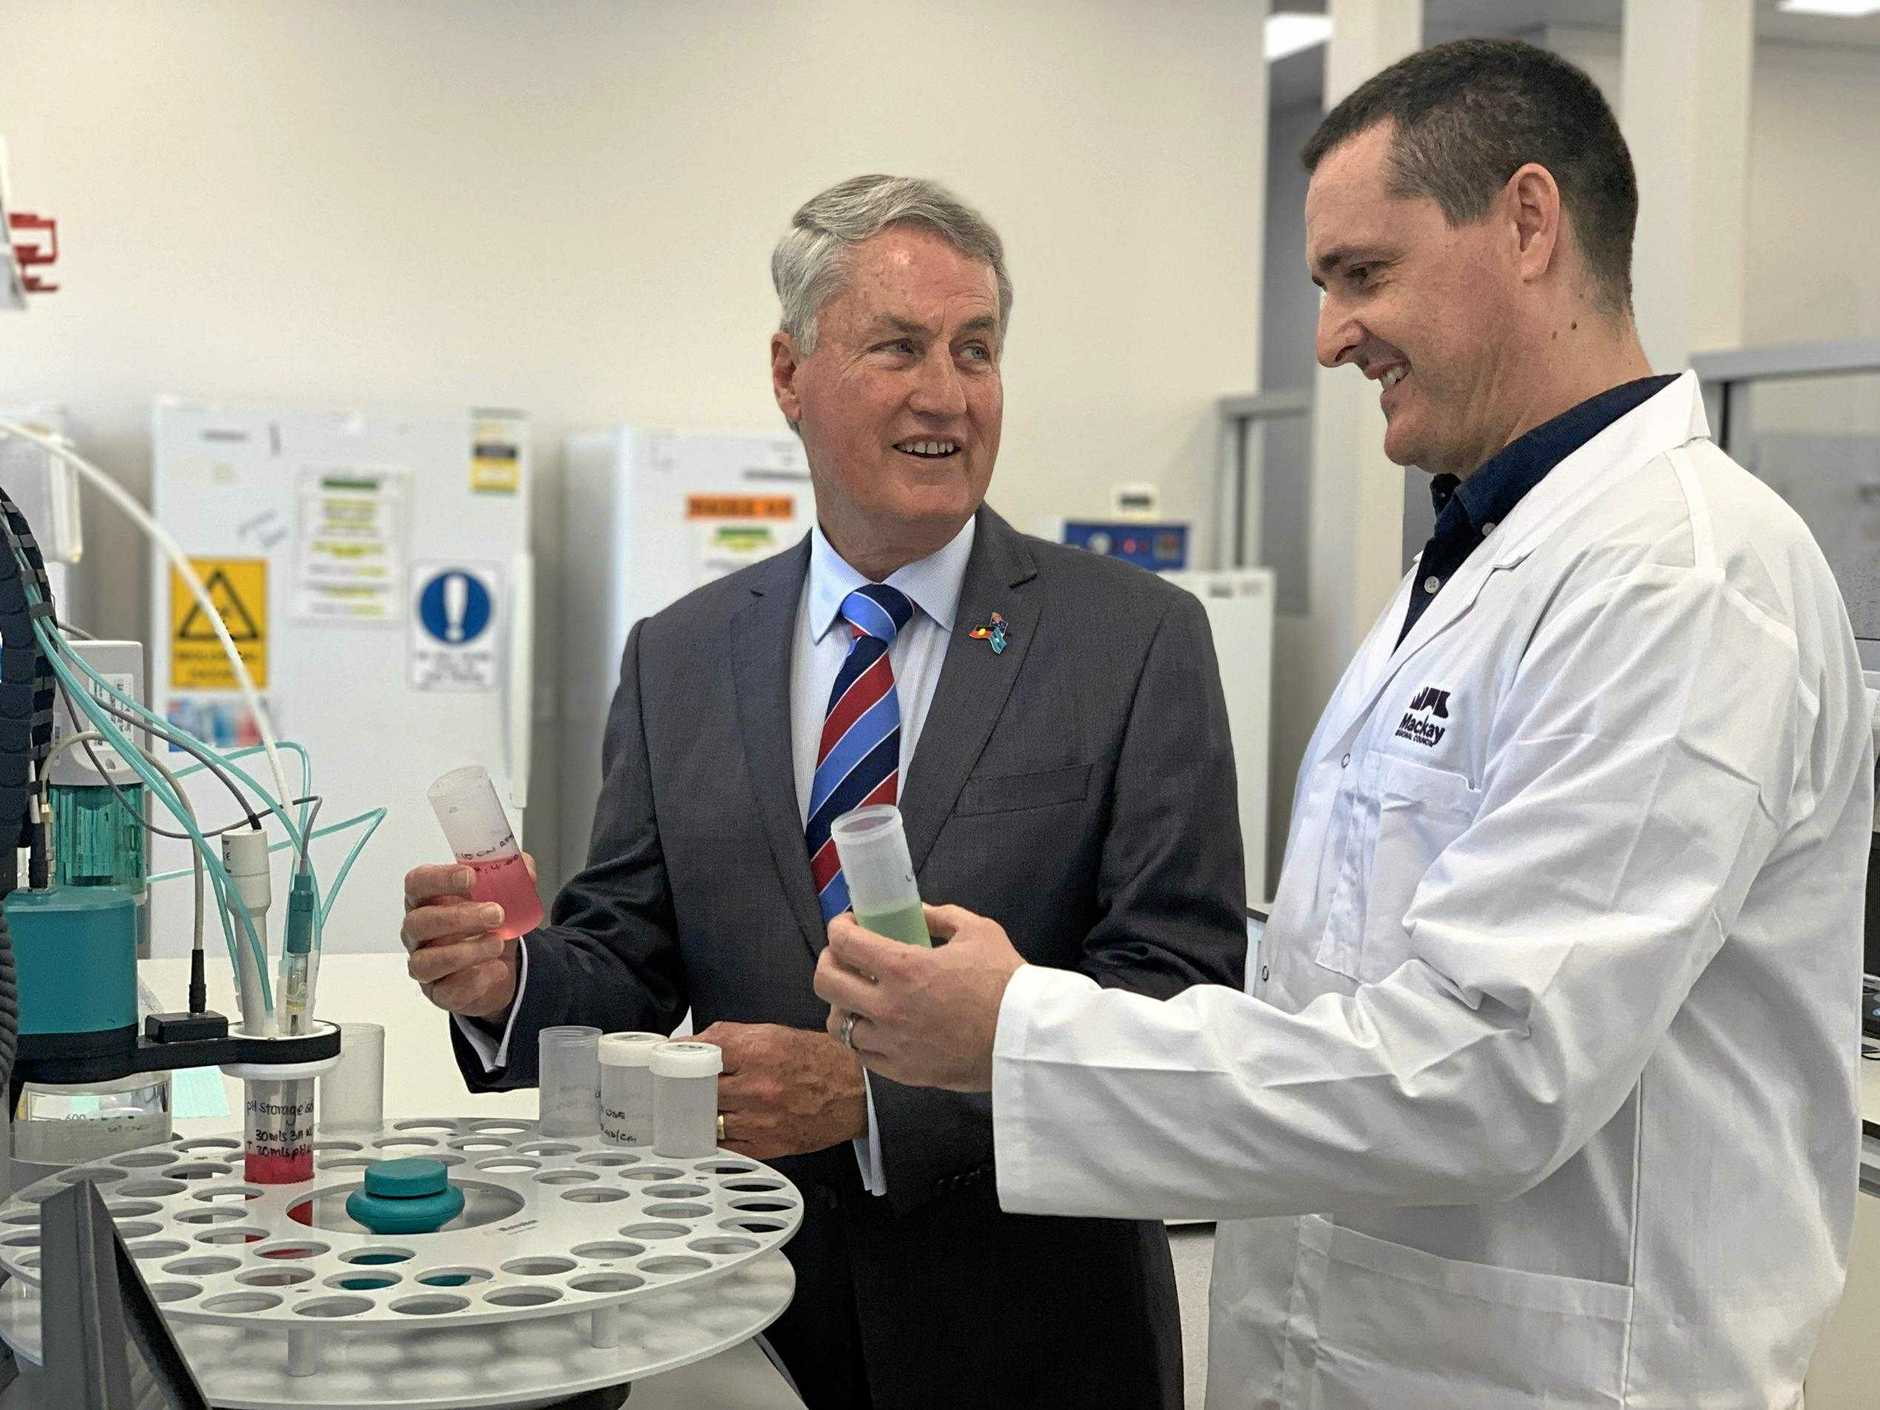 Mayor Greg Williamson, left, and water treatment manager Stuart Boyd inside Mackay Regional Council's new Water and Waste Scientific and Analytical Services laboratory on Connors Road, Paget.